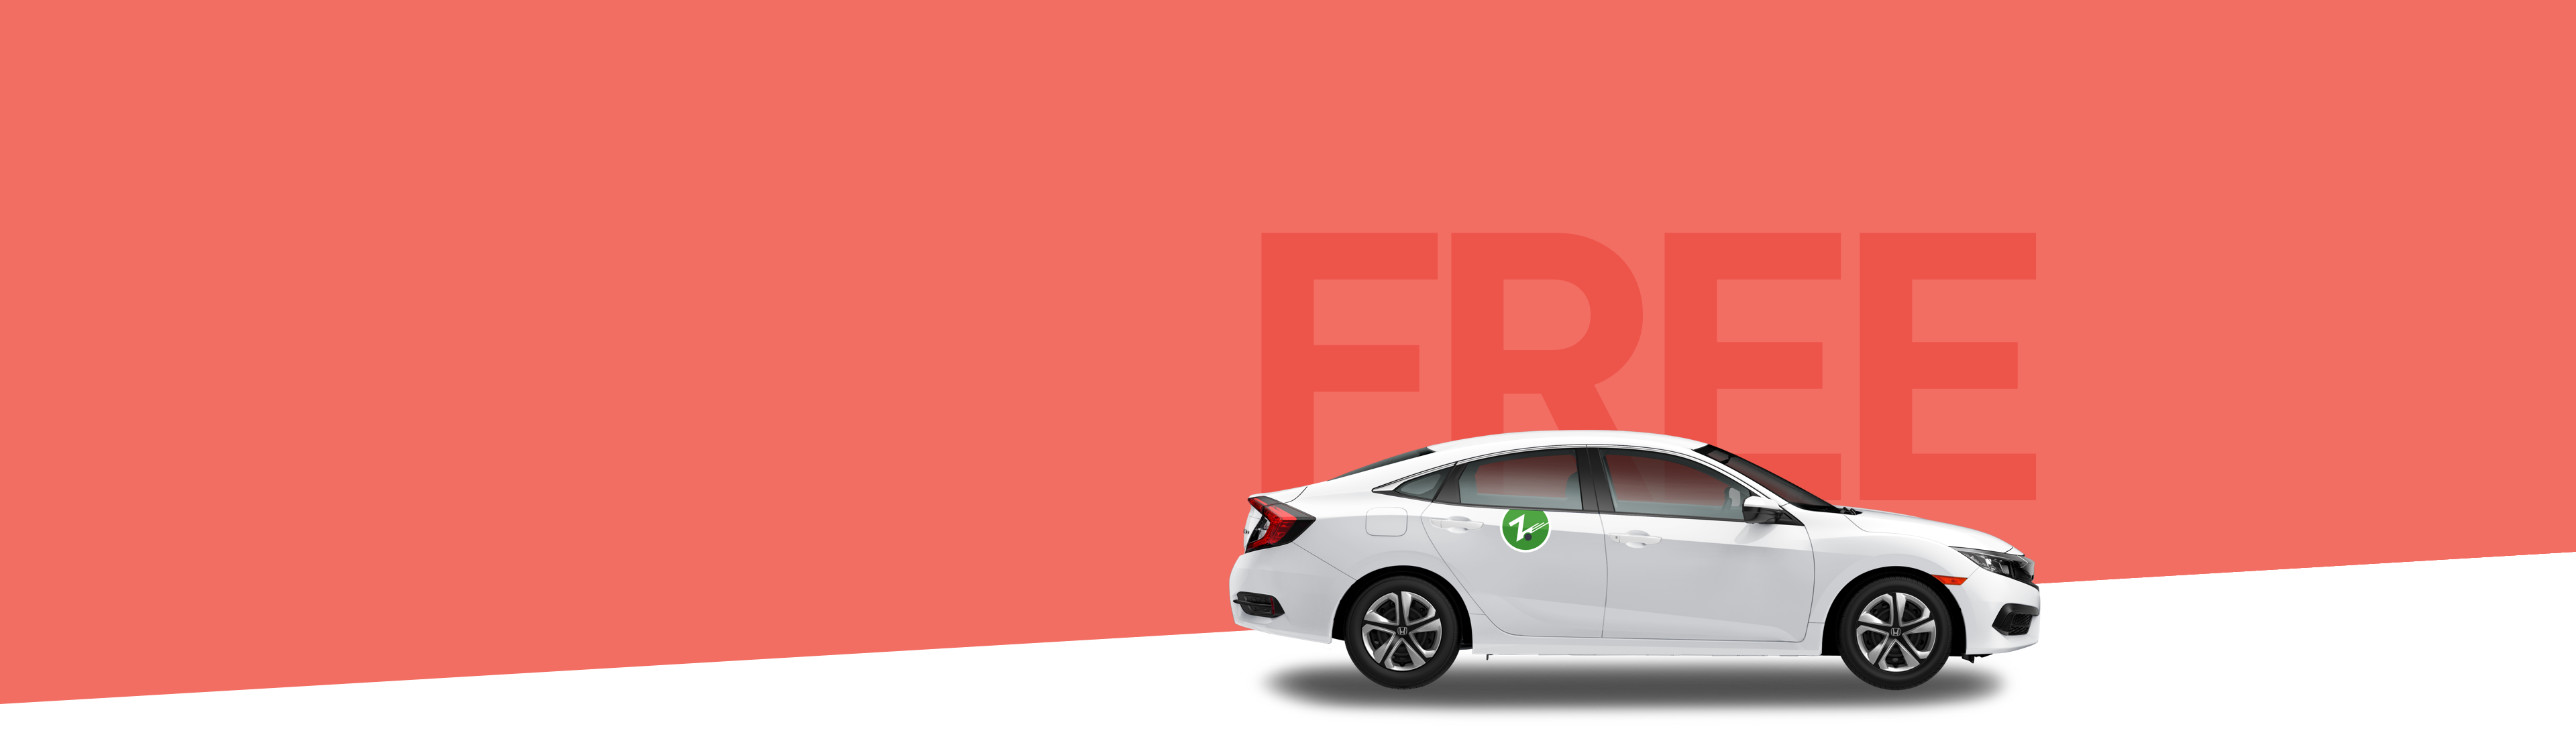 zipcar-free-trial-summer-white-car